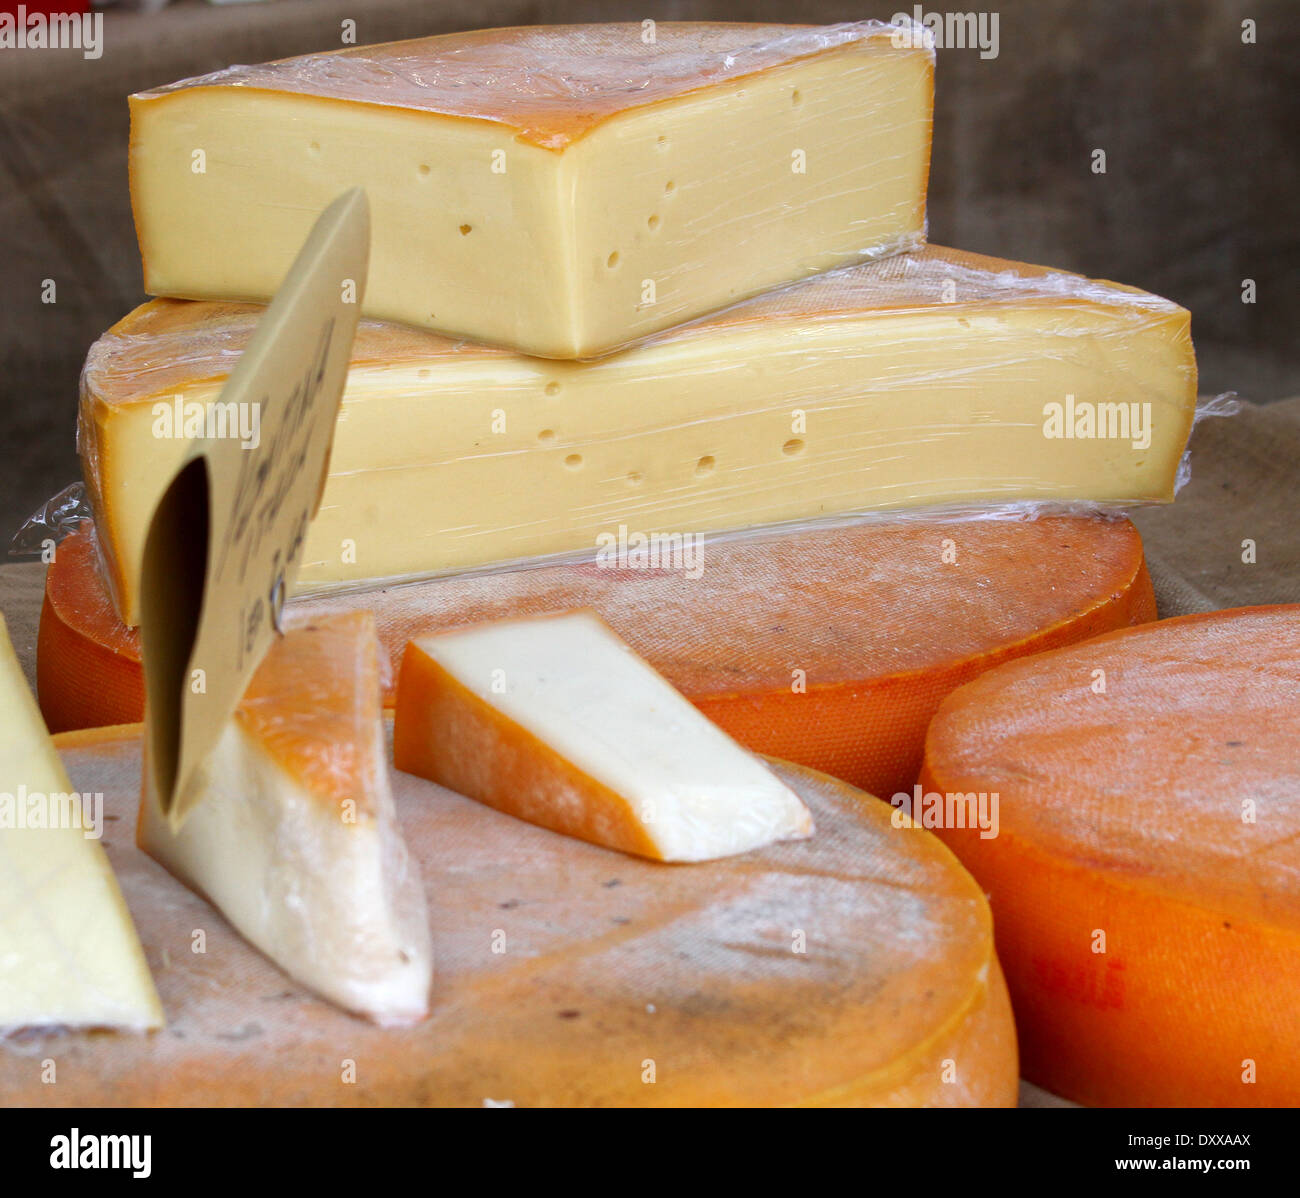 excellent yellow cheese on sale from milkman into a village fair 2 - Stock Image